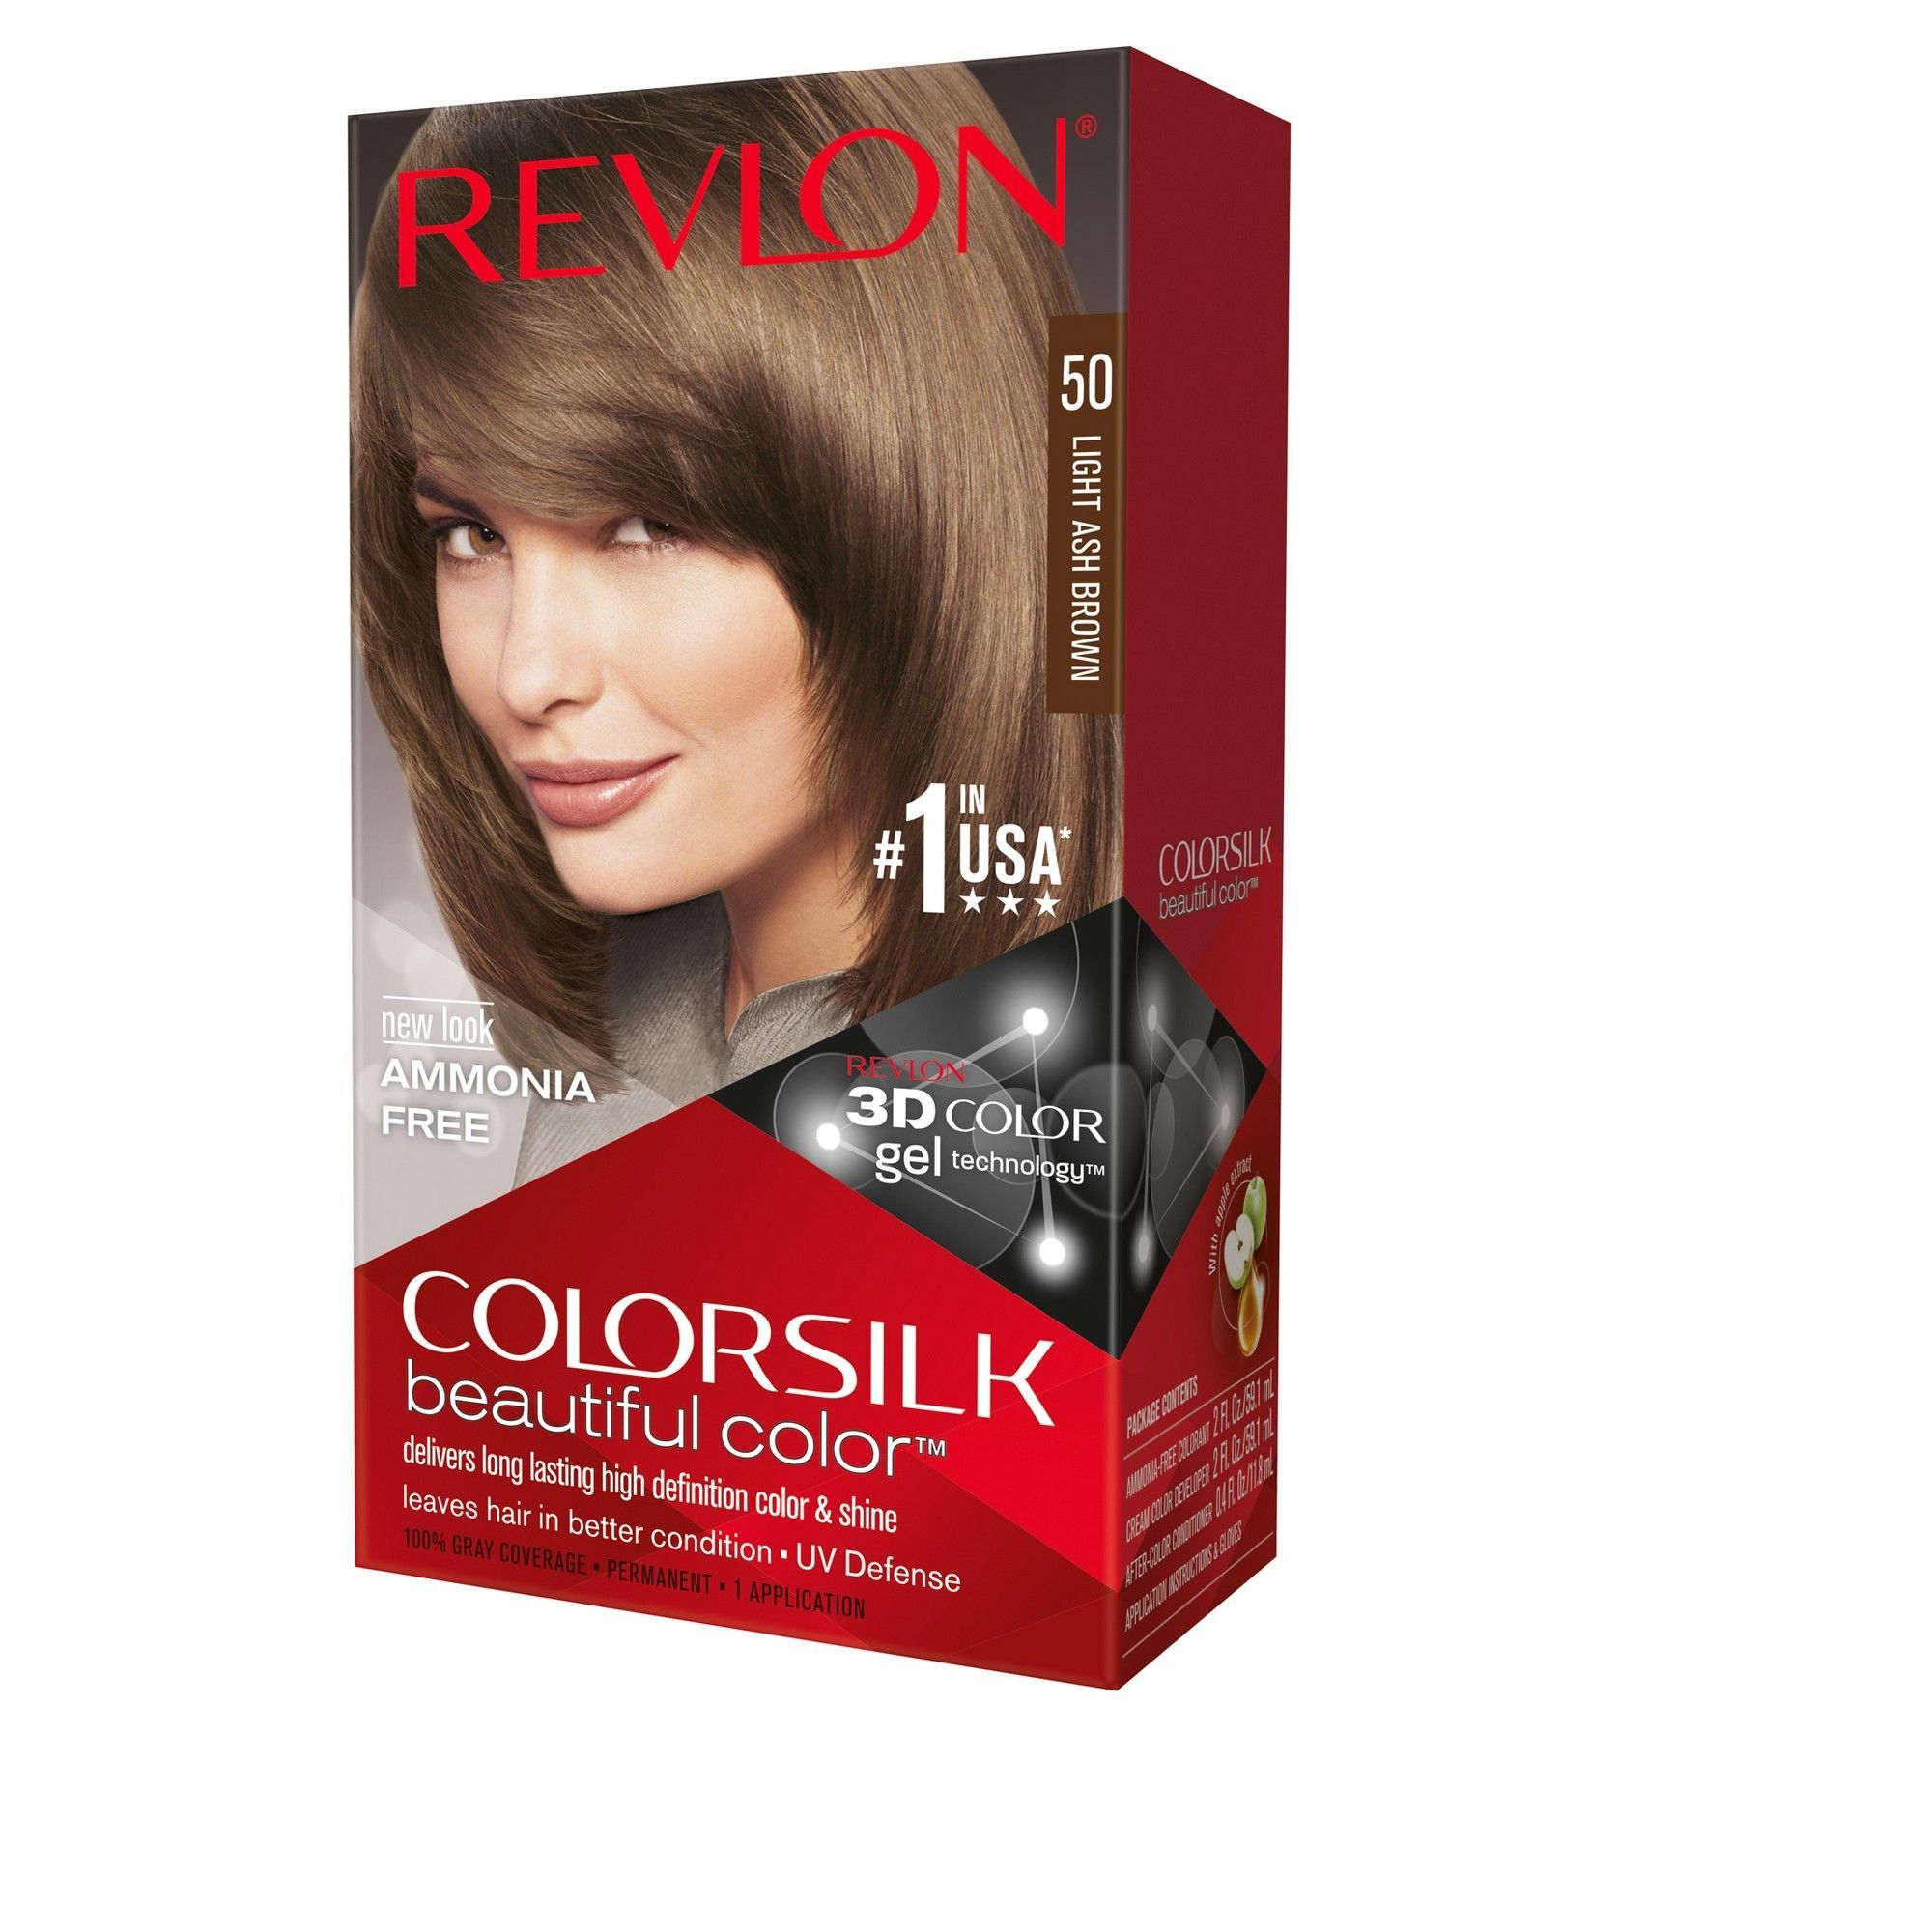 n at minutes hair home clairol ash with color brown light just in nice nicen refresh easy